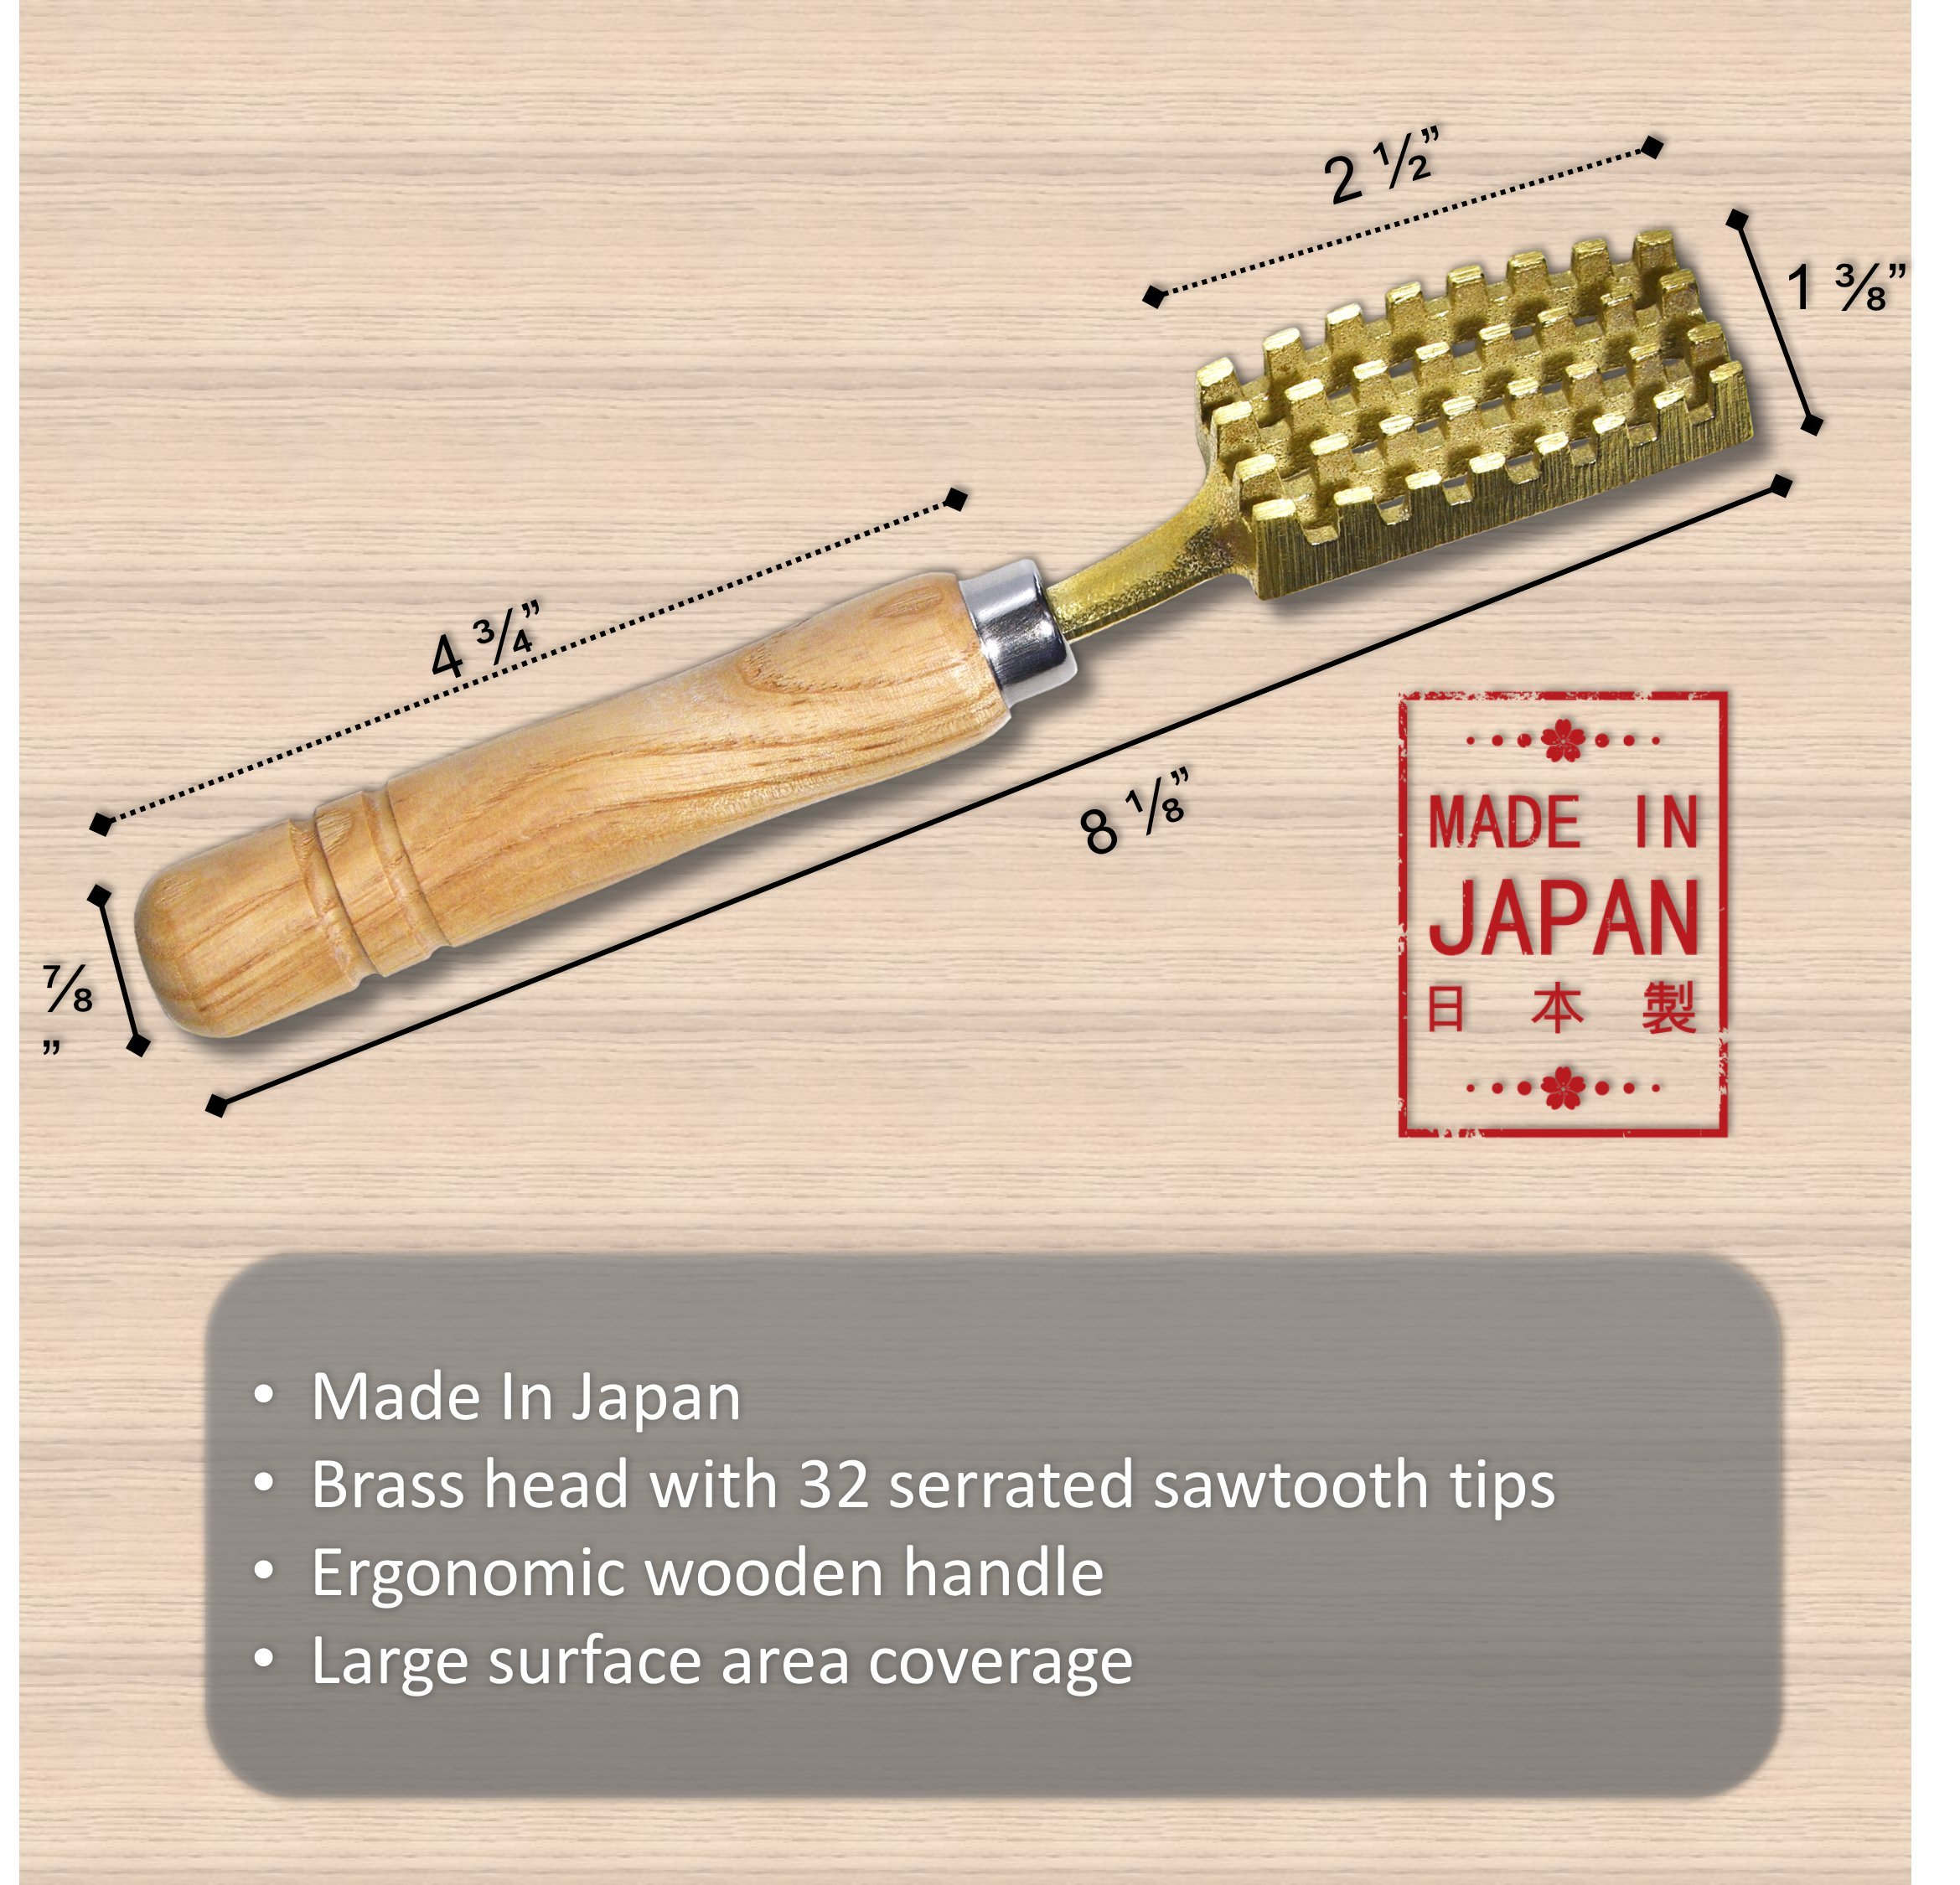 Kwizing Made in Japan Fish Scaler Brush with Brass Serrated Sawtooth and Ergonomic Wooden Handle - Easily Remove Fish Scales Without Fuss Or Mess - Handcrafted by Japanese Artisans by Kwizing (Image #2)